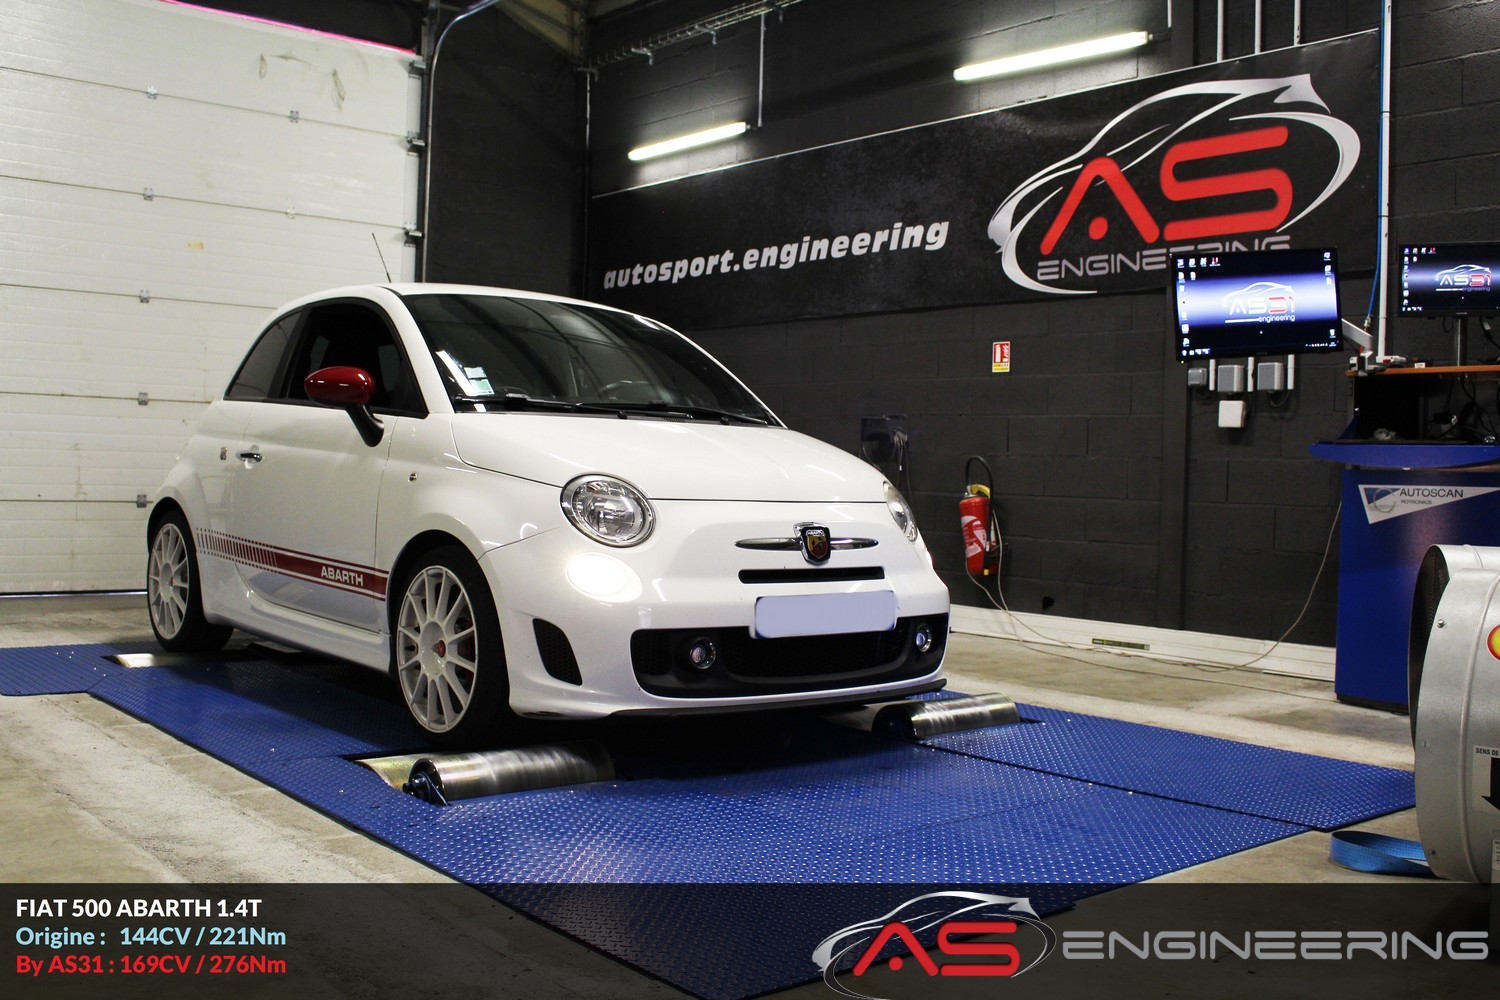 fiat 500 abarth 1 4t as31 reprog moteur proche toulouse. Black Bedroom Furniture Sets. Home Design Ideas